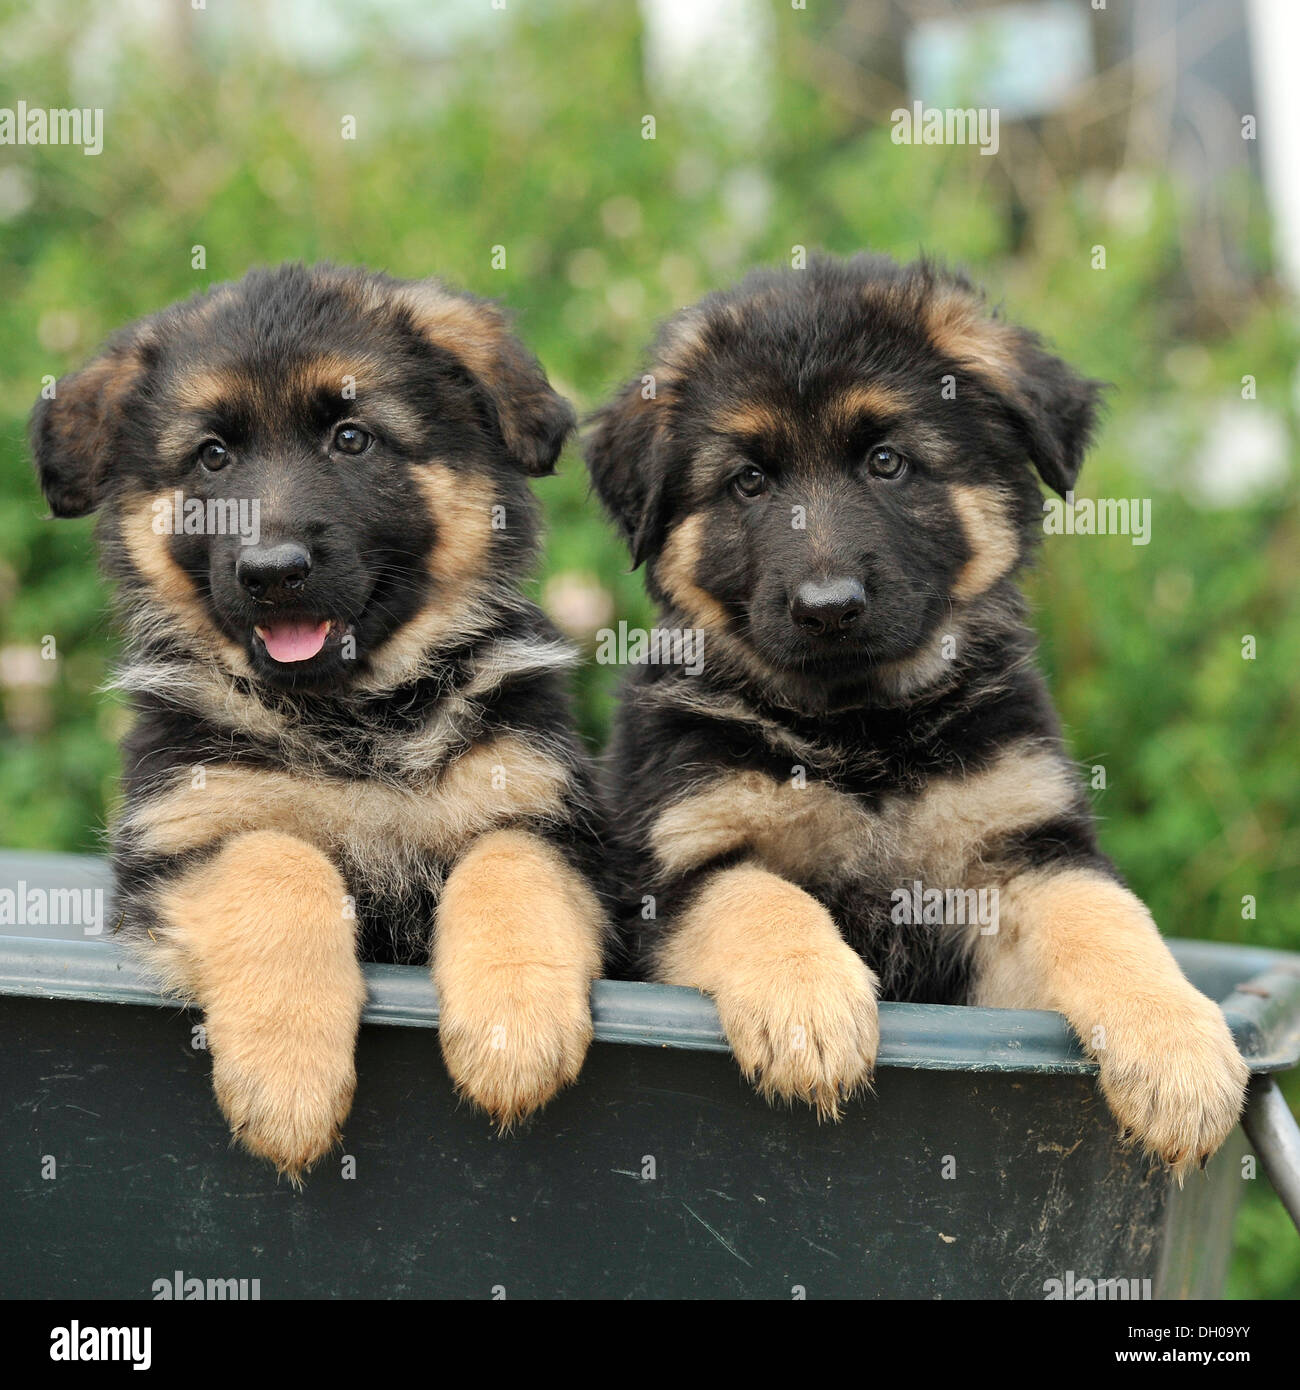 All About German Shepherd Dog Breed